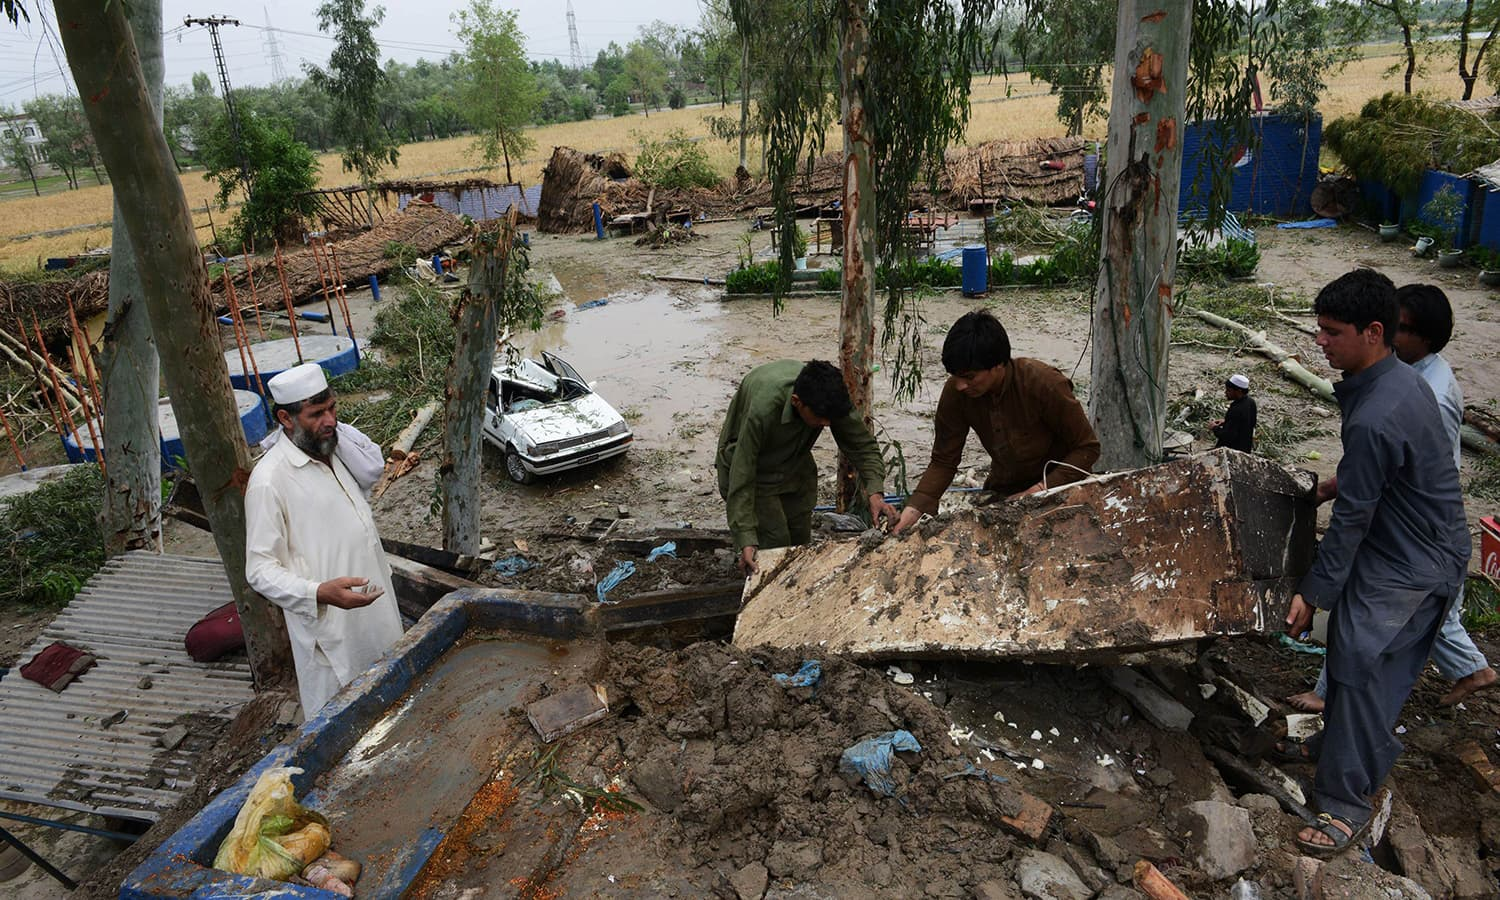 Residents collect belongings at their home after it was damaged in heavy rain and winds in Peshawar. — AFP